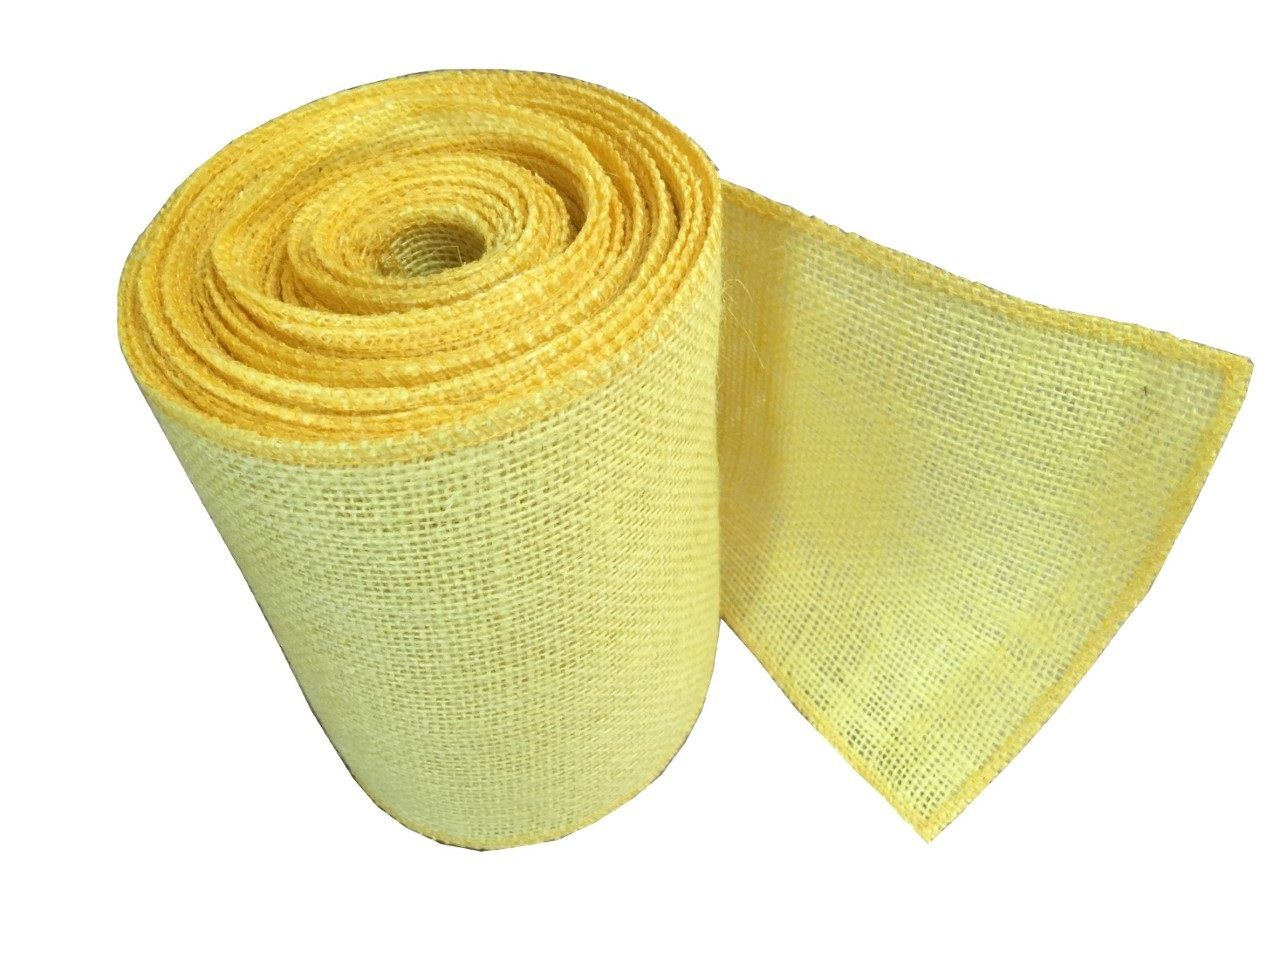 6 Yellow Burlap Ribbon 10 Yards Serged Burlap Ribbon Burlap Beach Bag